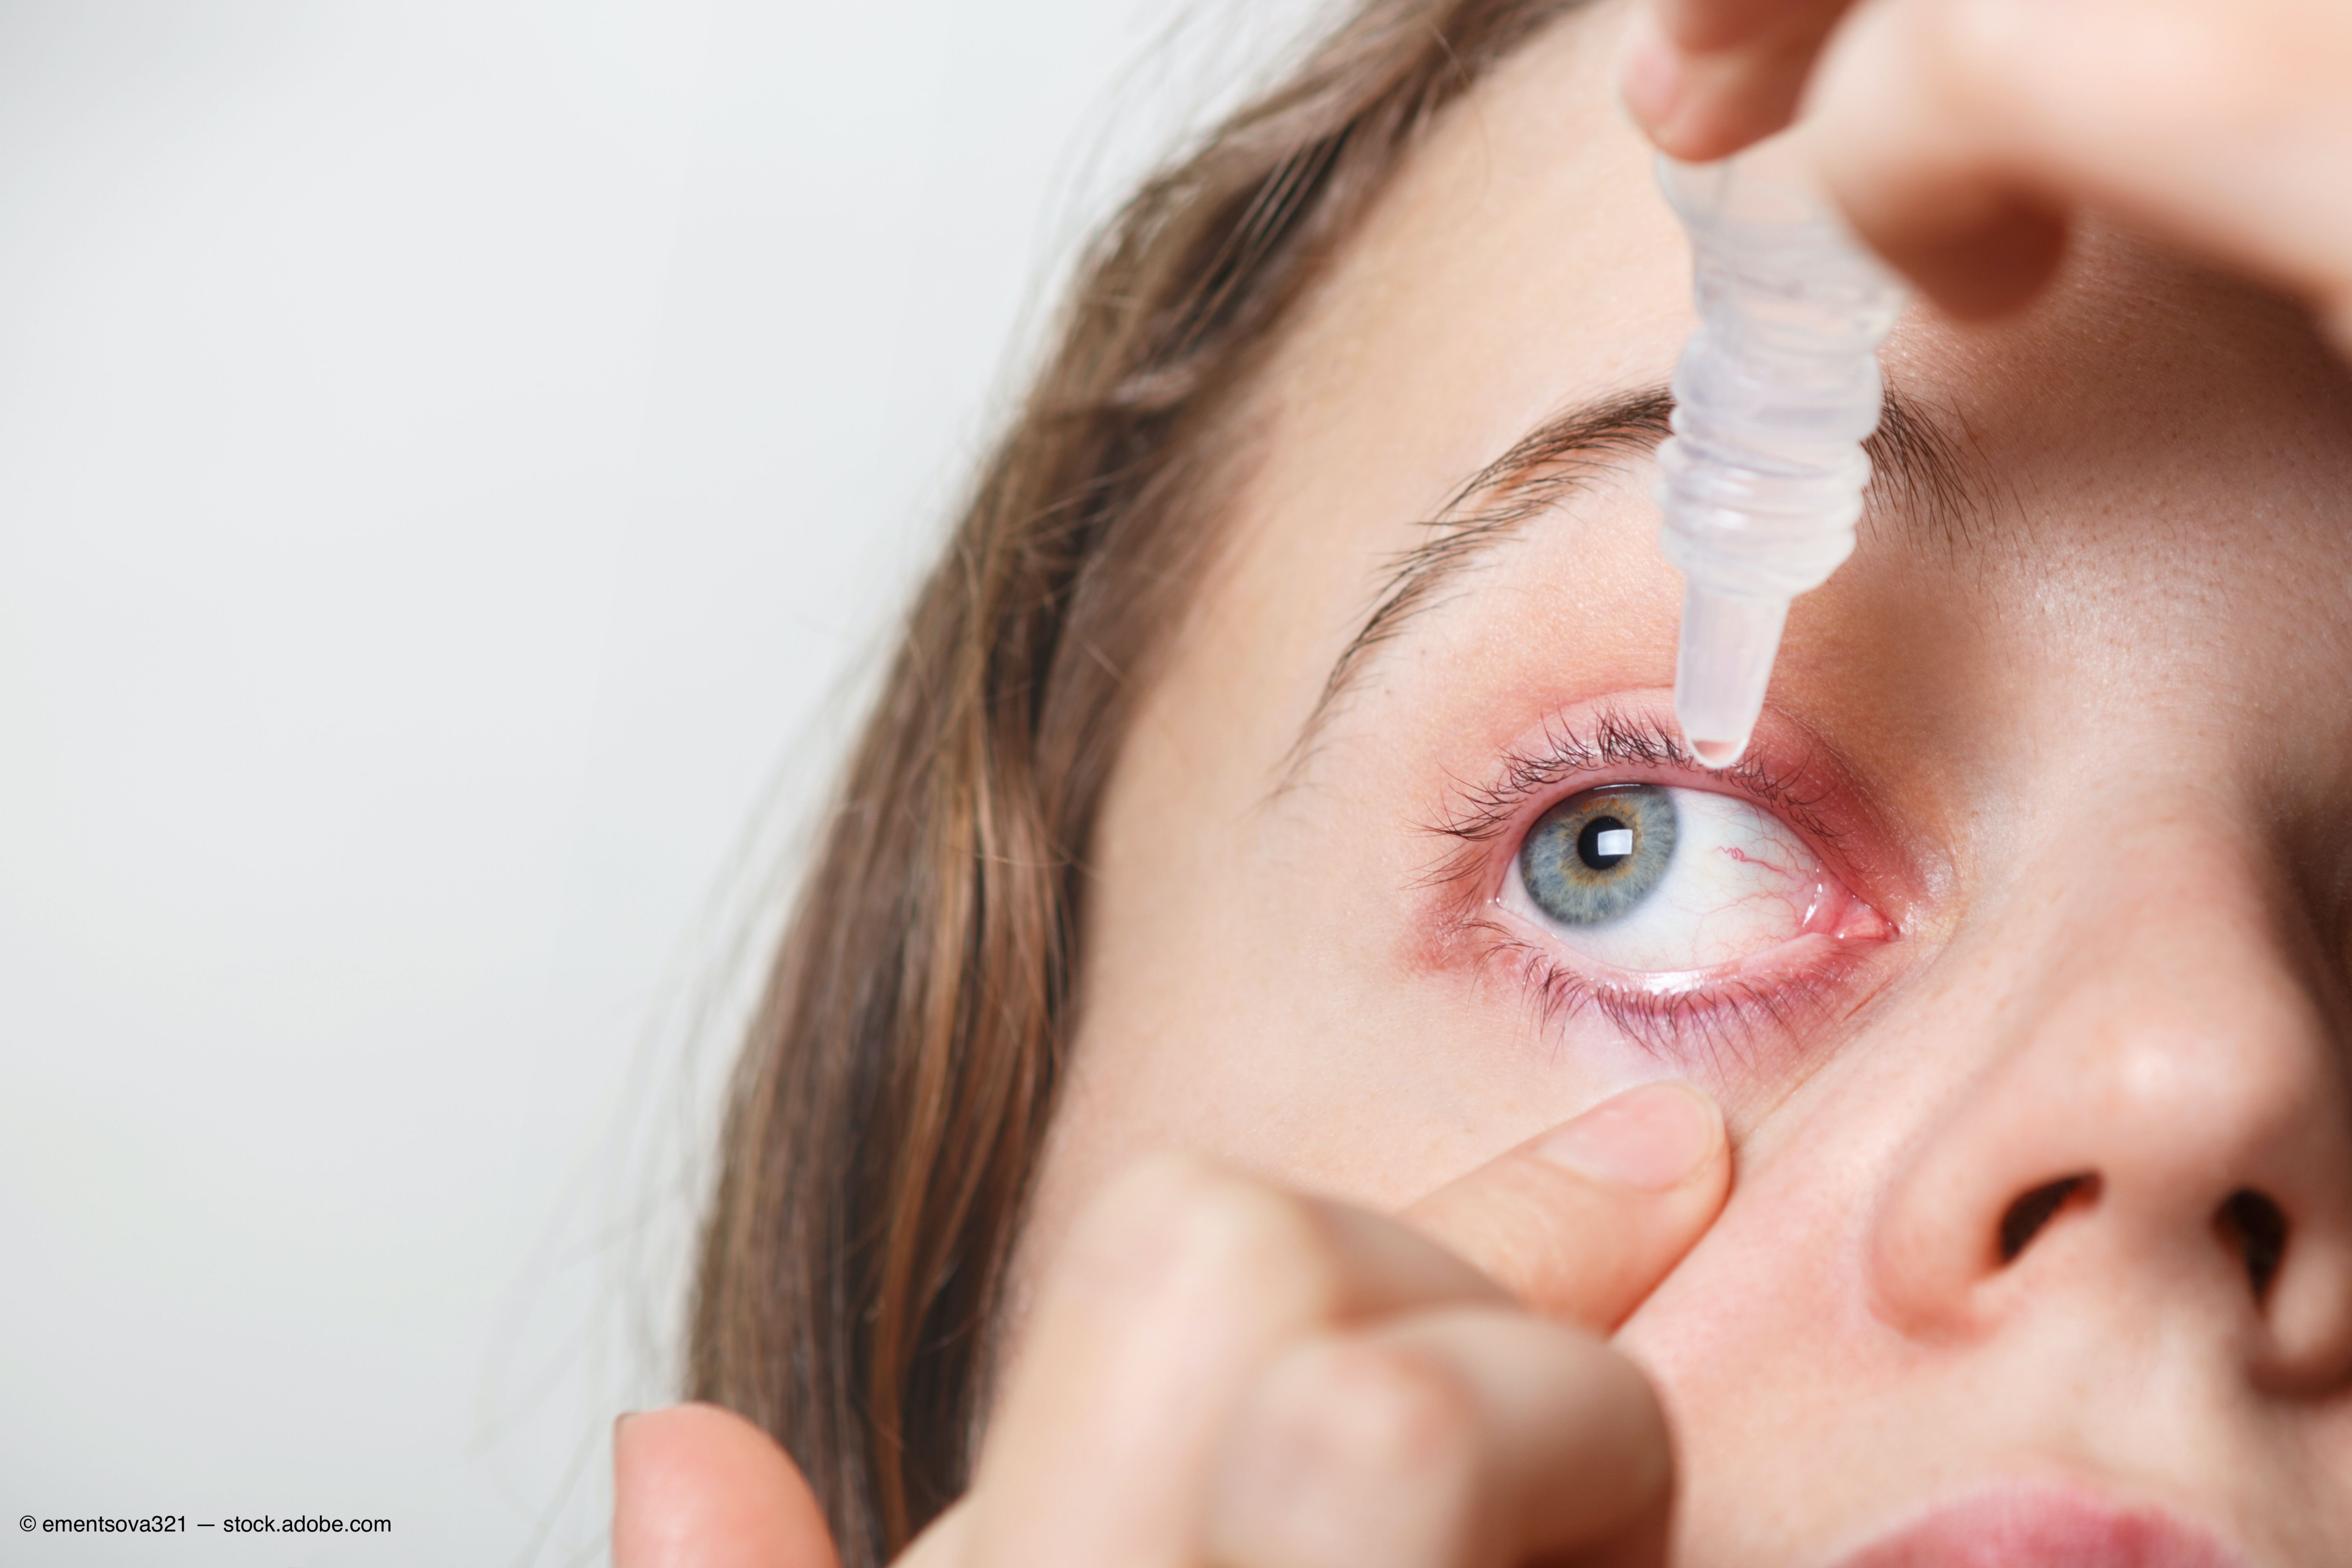 »MYTH No. 1: Autologous serum is a treatment of last resort mostly used by cornea specialists